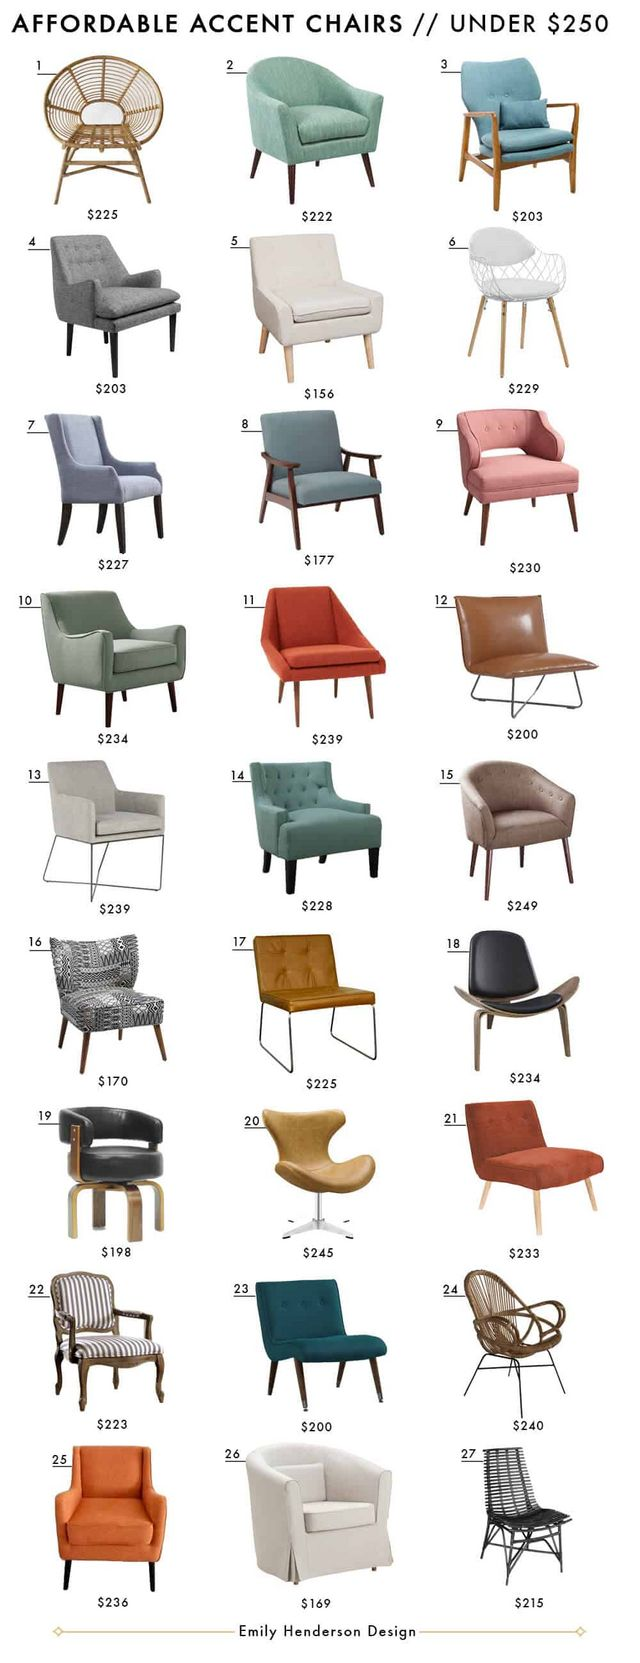 Affordable Accent Chair Roundup Emily Henderson Bloglovin